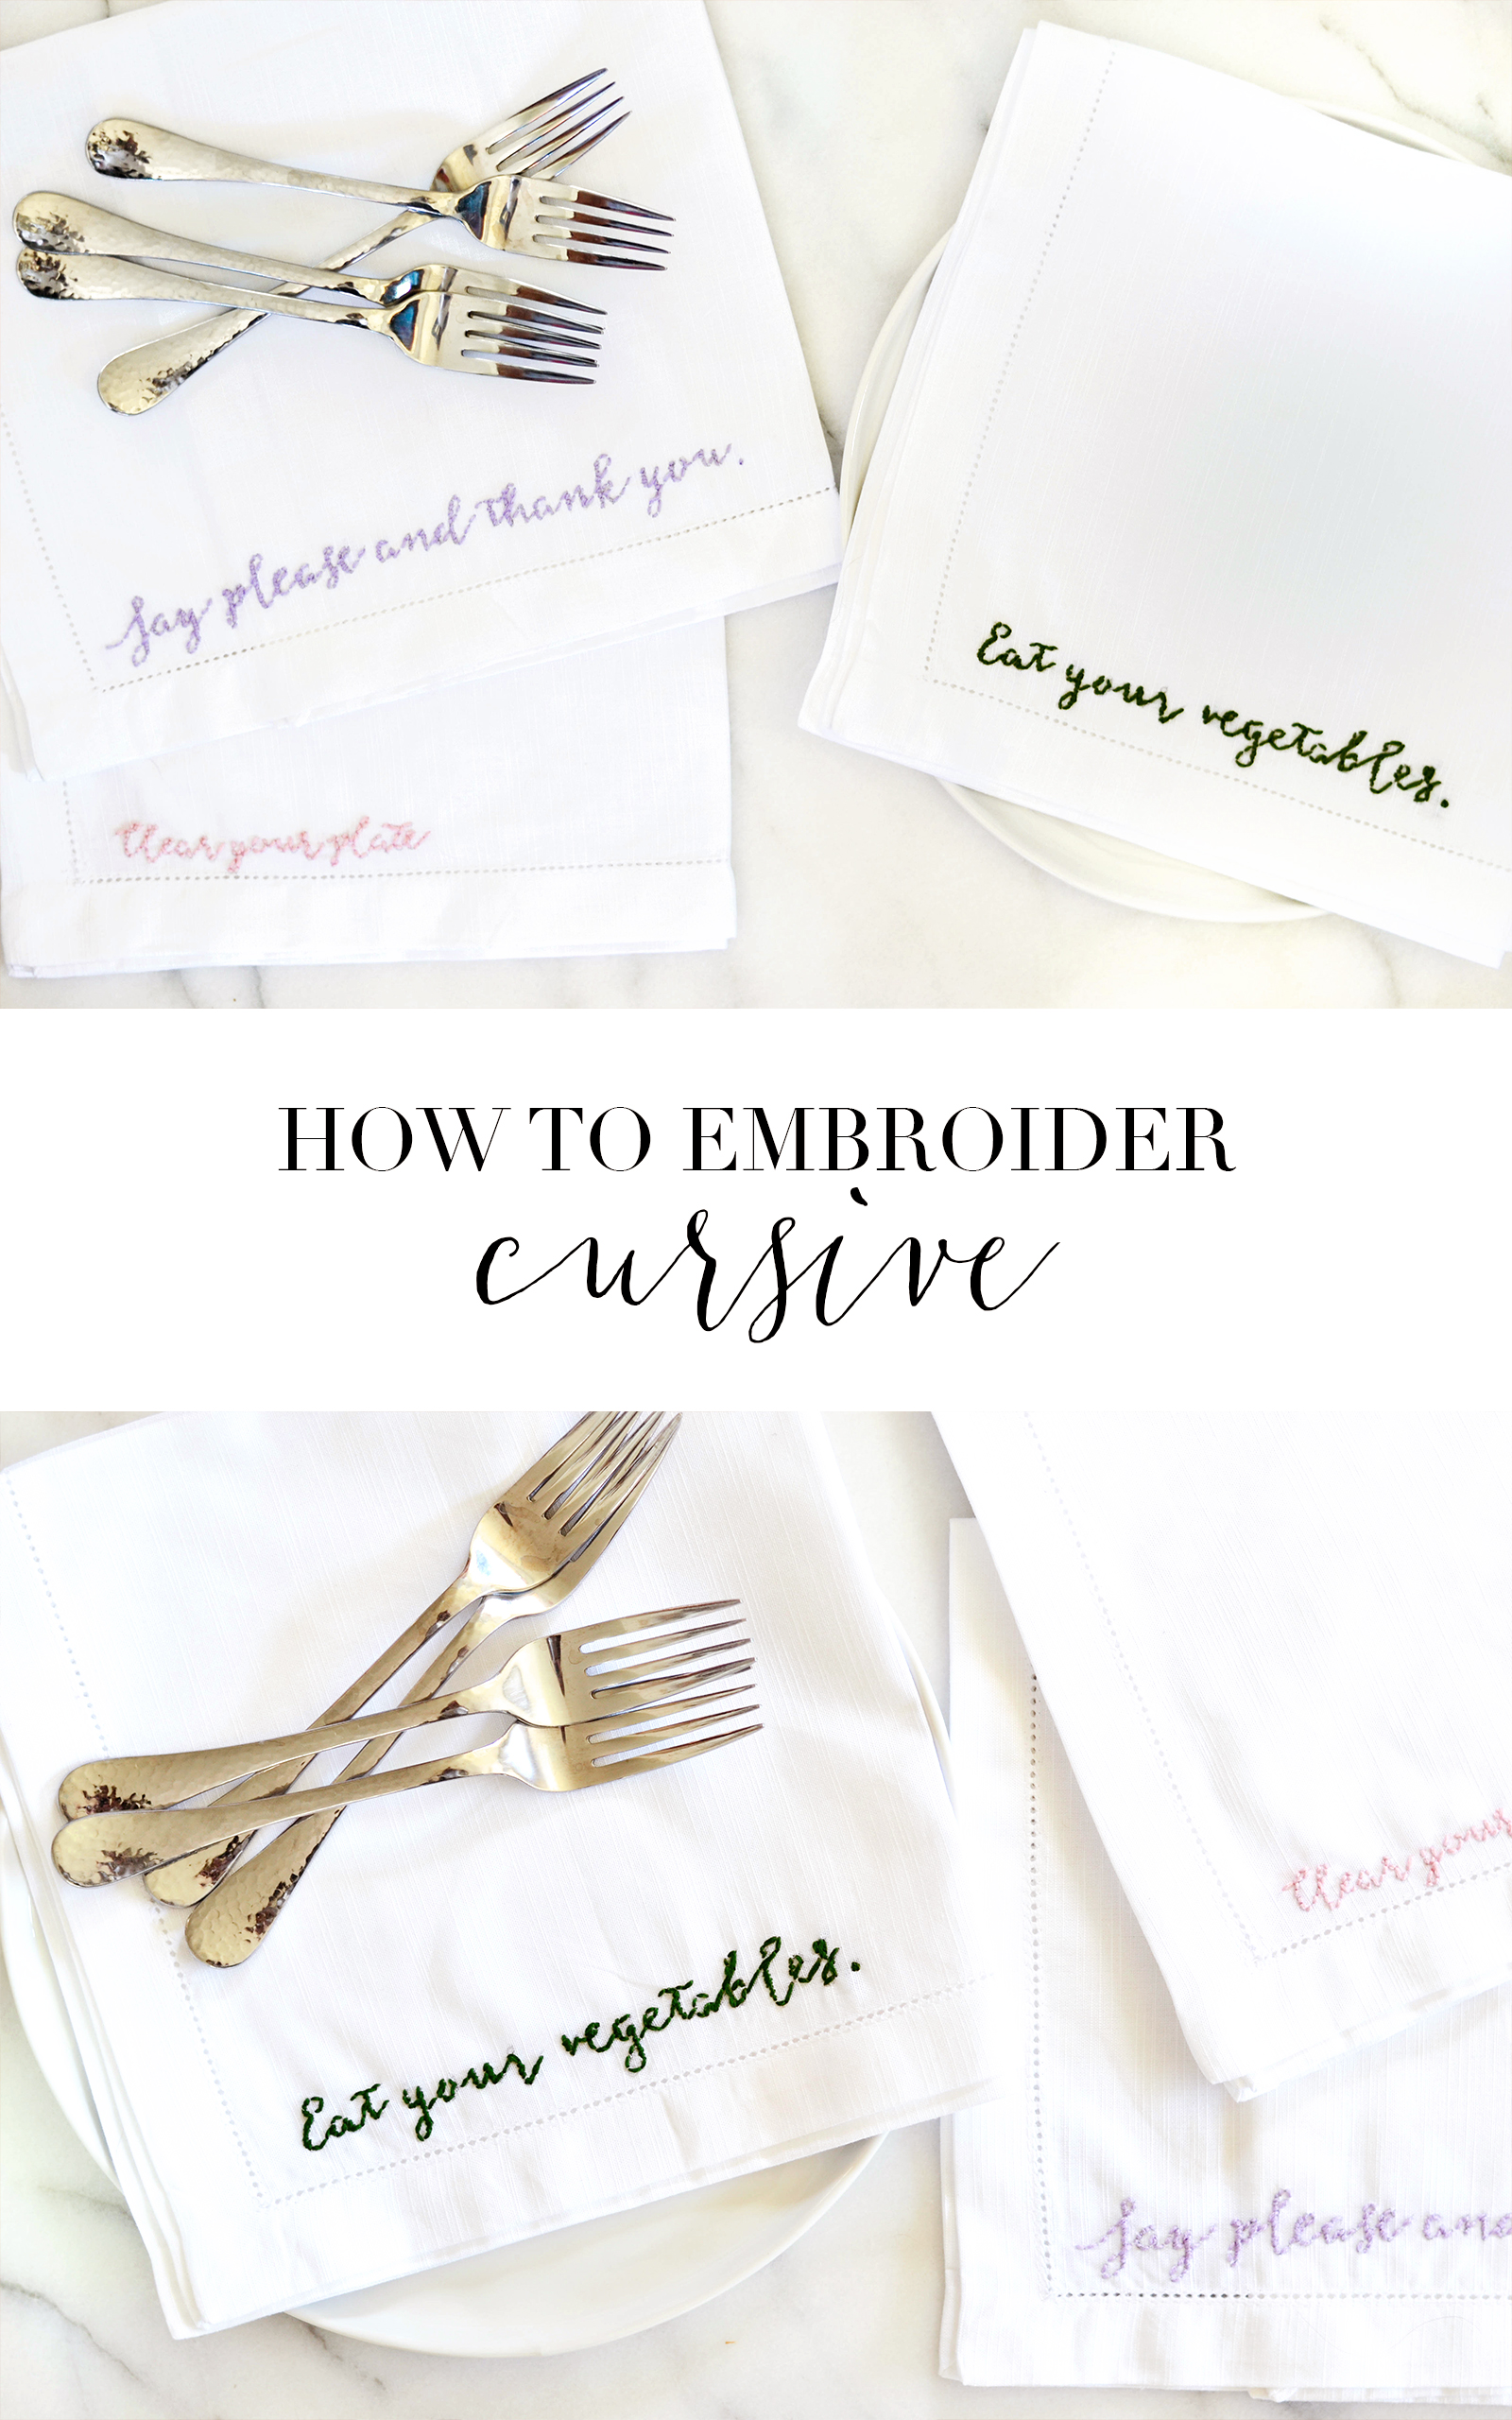 Techniques for embroidering cursive & fonts from boxwoodavenue.com